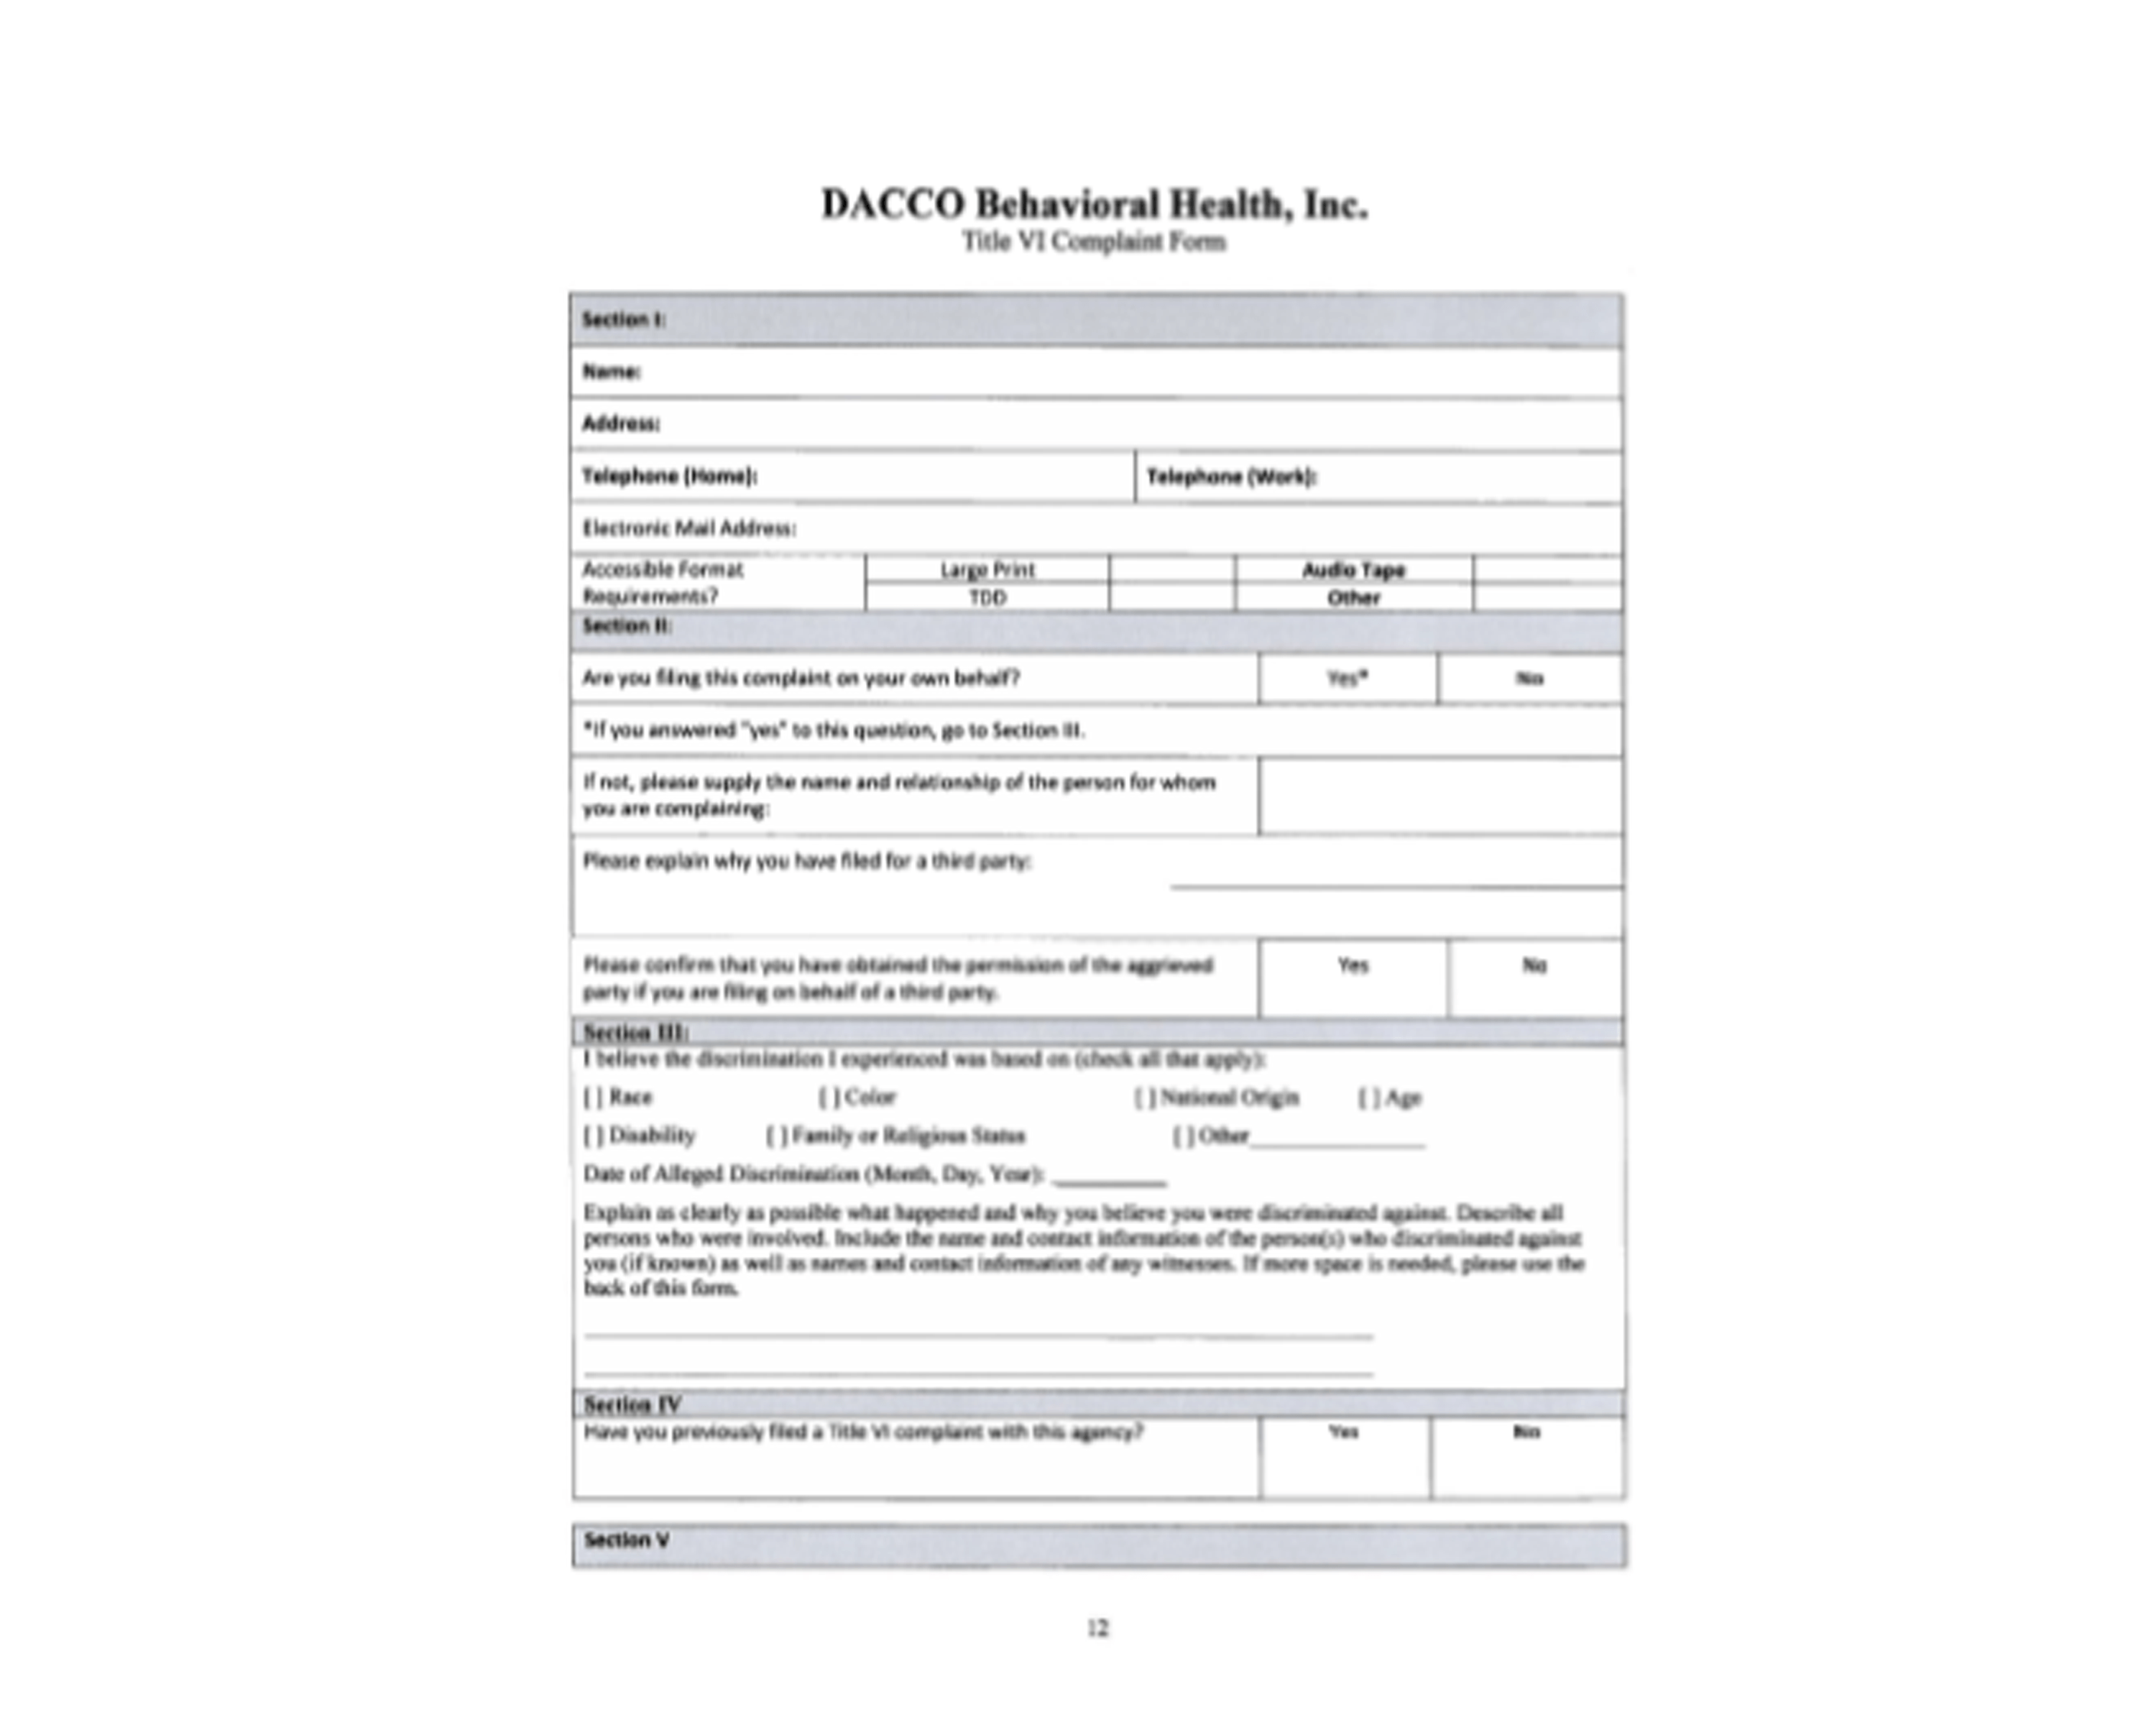 DACCO Van Transportation Discrimination Complaint Form - Spanish Version